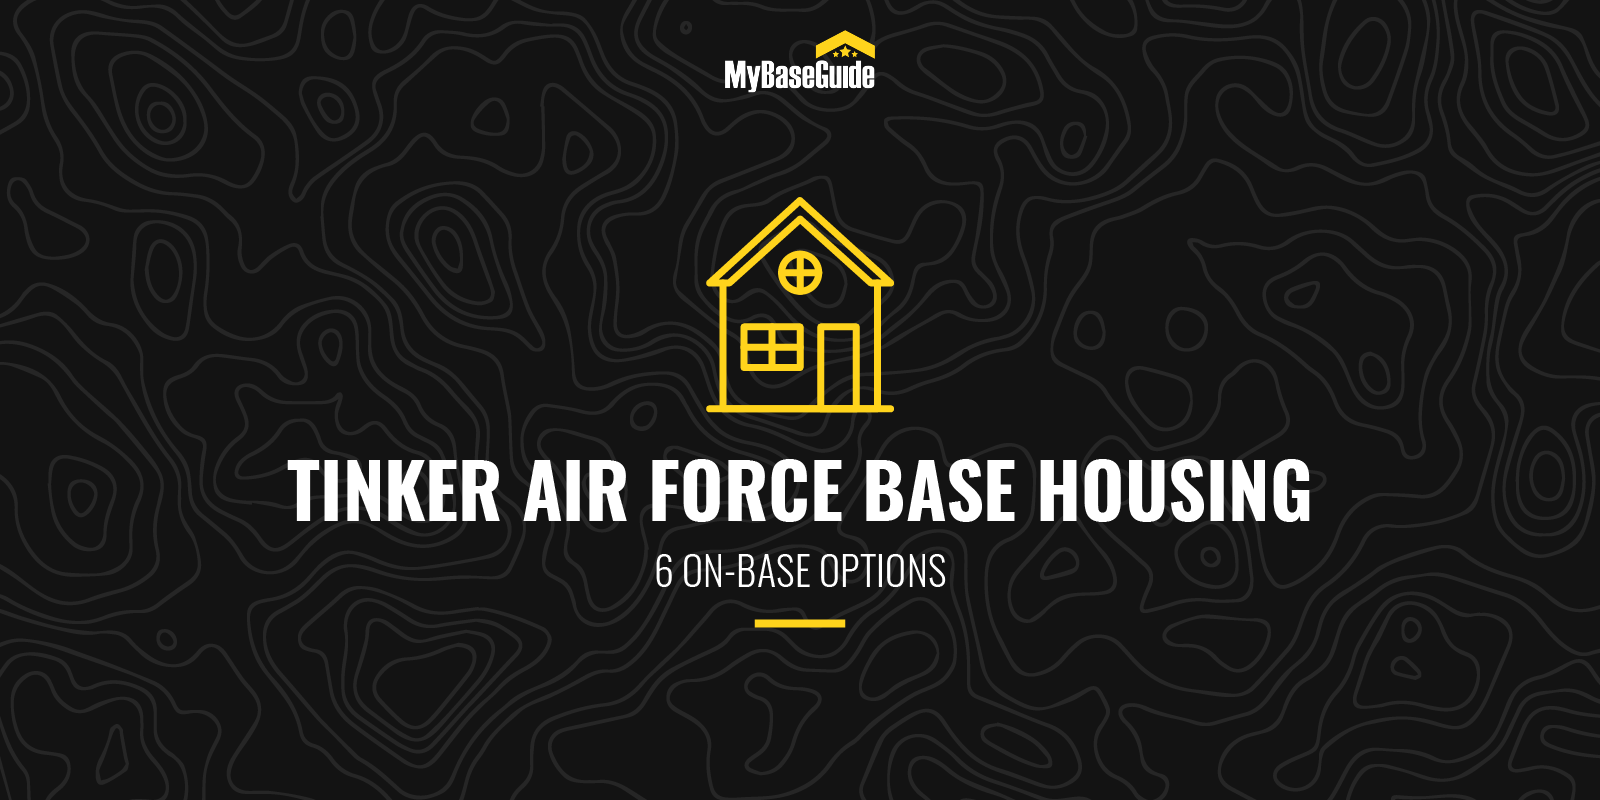 Tinker AFB Housing: 6 On-Base Options